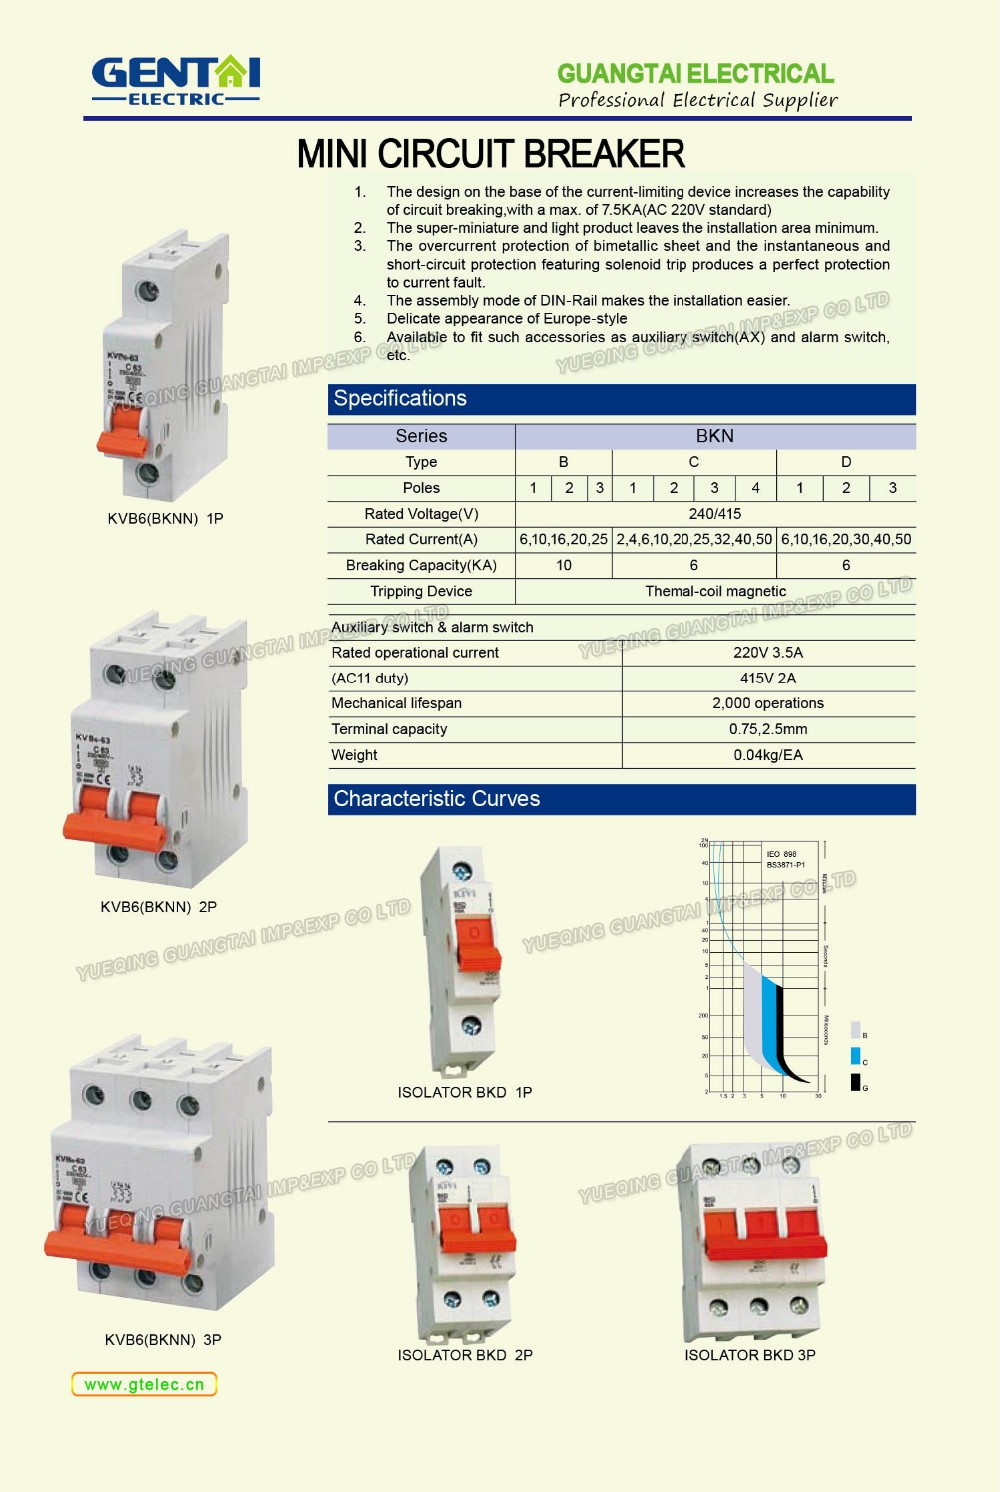 63 Amp Circuit Breaker Best Brand Mcb Safety Types Of Electrical Different Electric Circuits